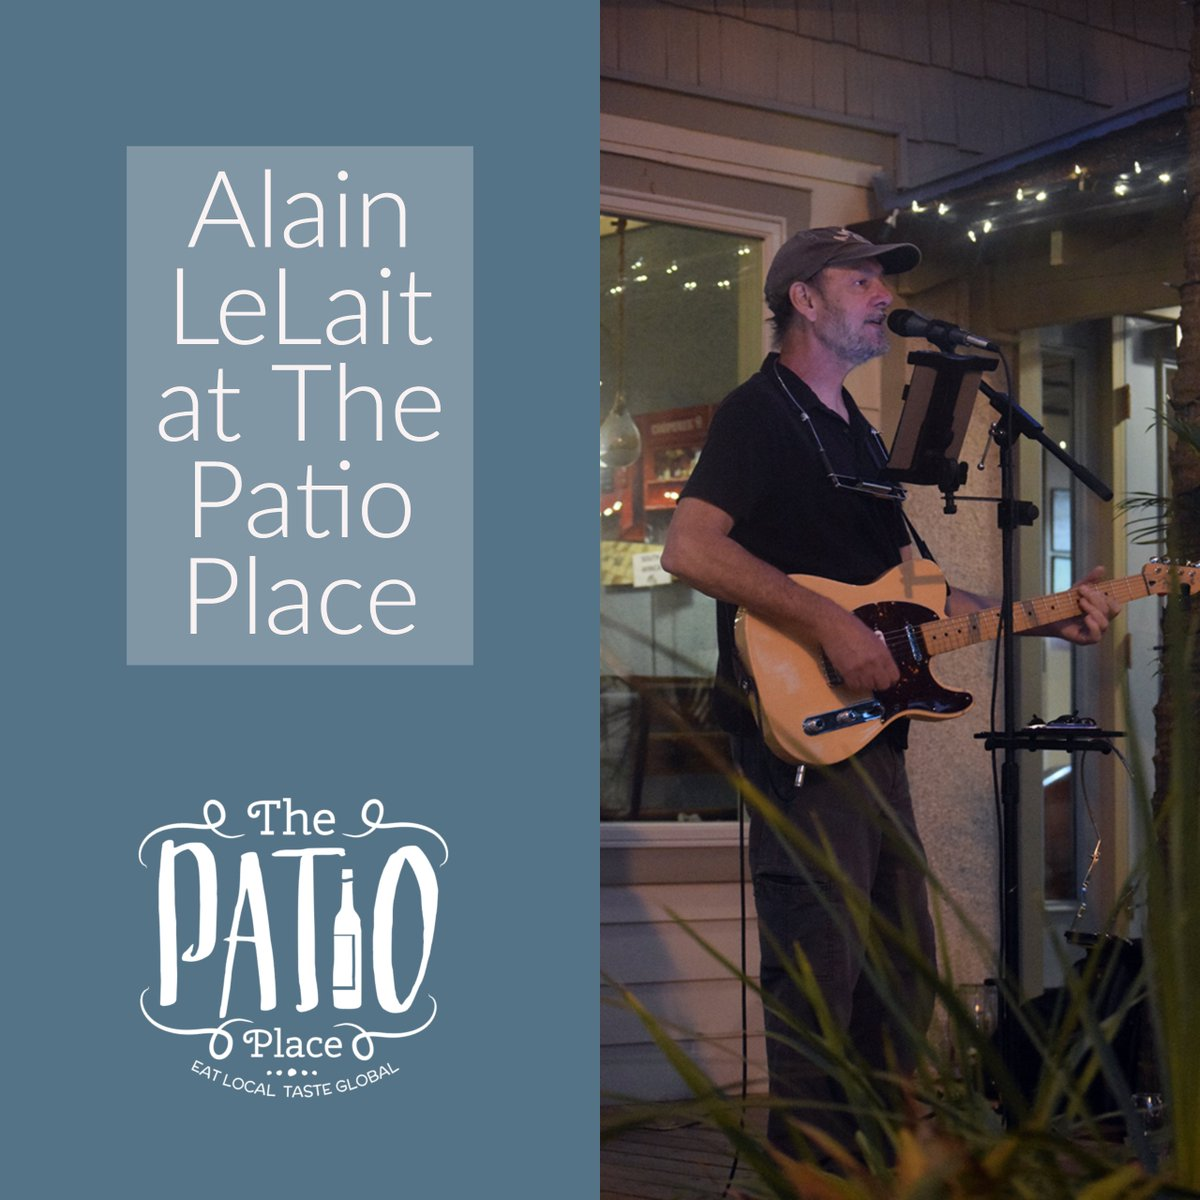 Join Us Saturday Night At The Patio Place For Music With Alain LeLait  6pm 9pm. #downtownfernandinabeach #thepatioplace  #alainlelaitpic.twitter.com/ ...